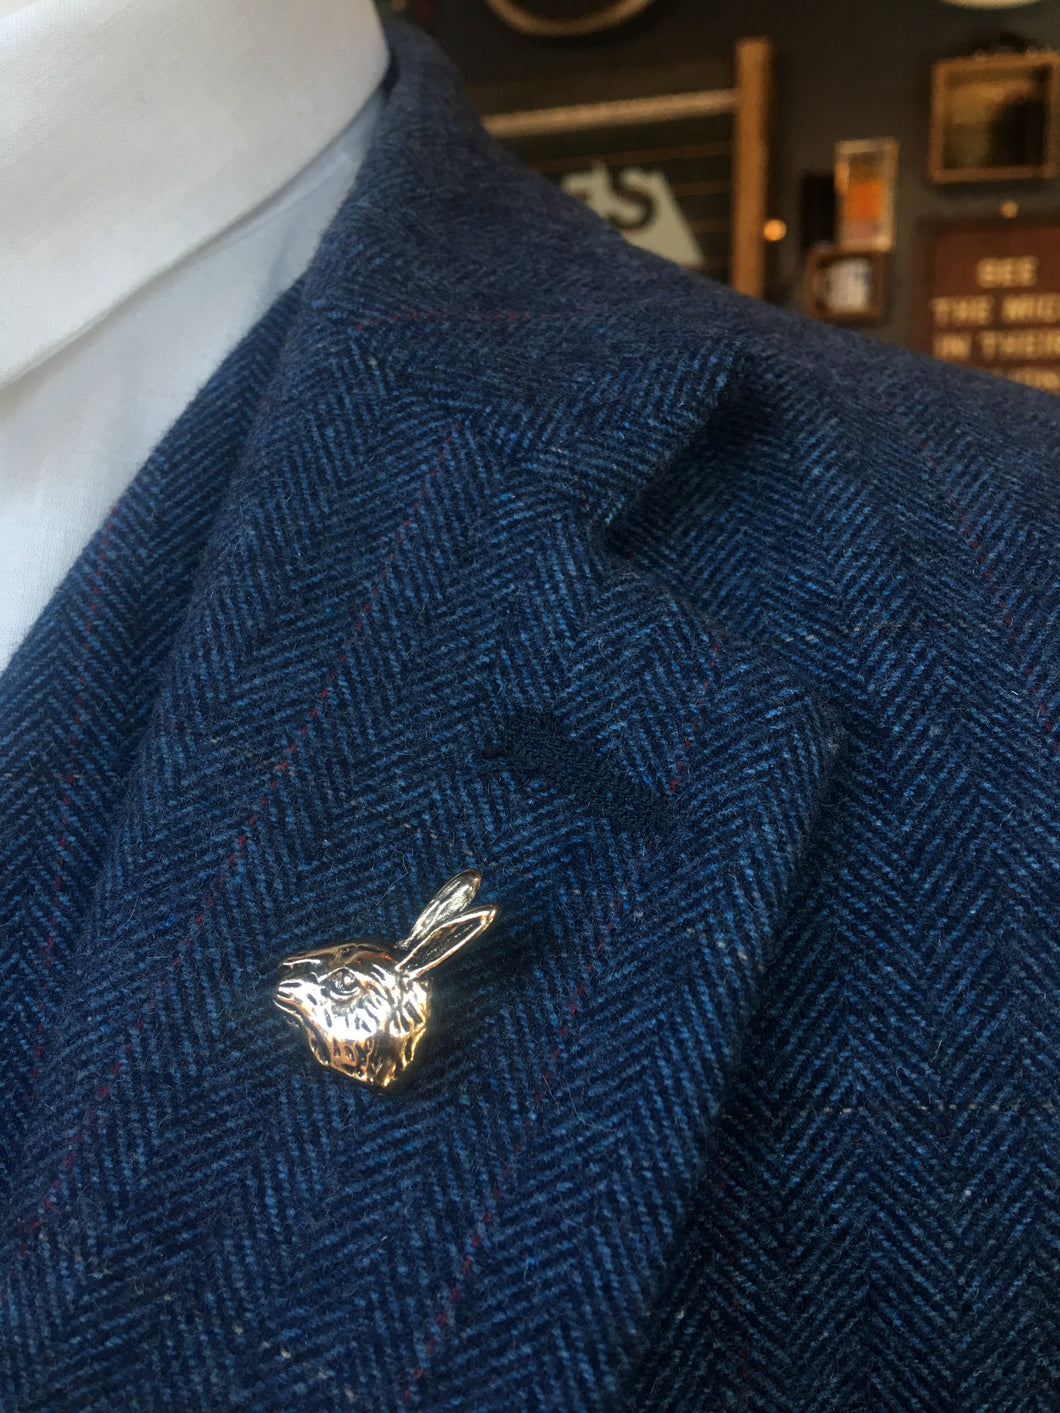 Burnished Gold Hare Lapel Pin